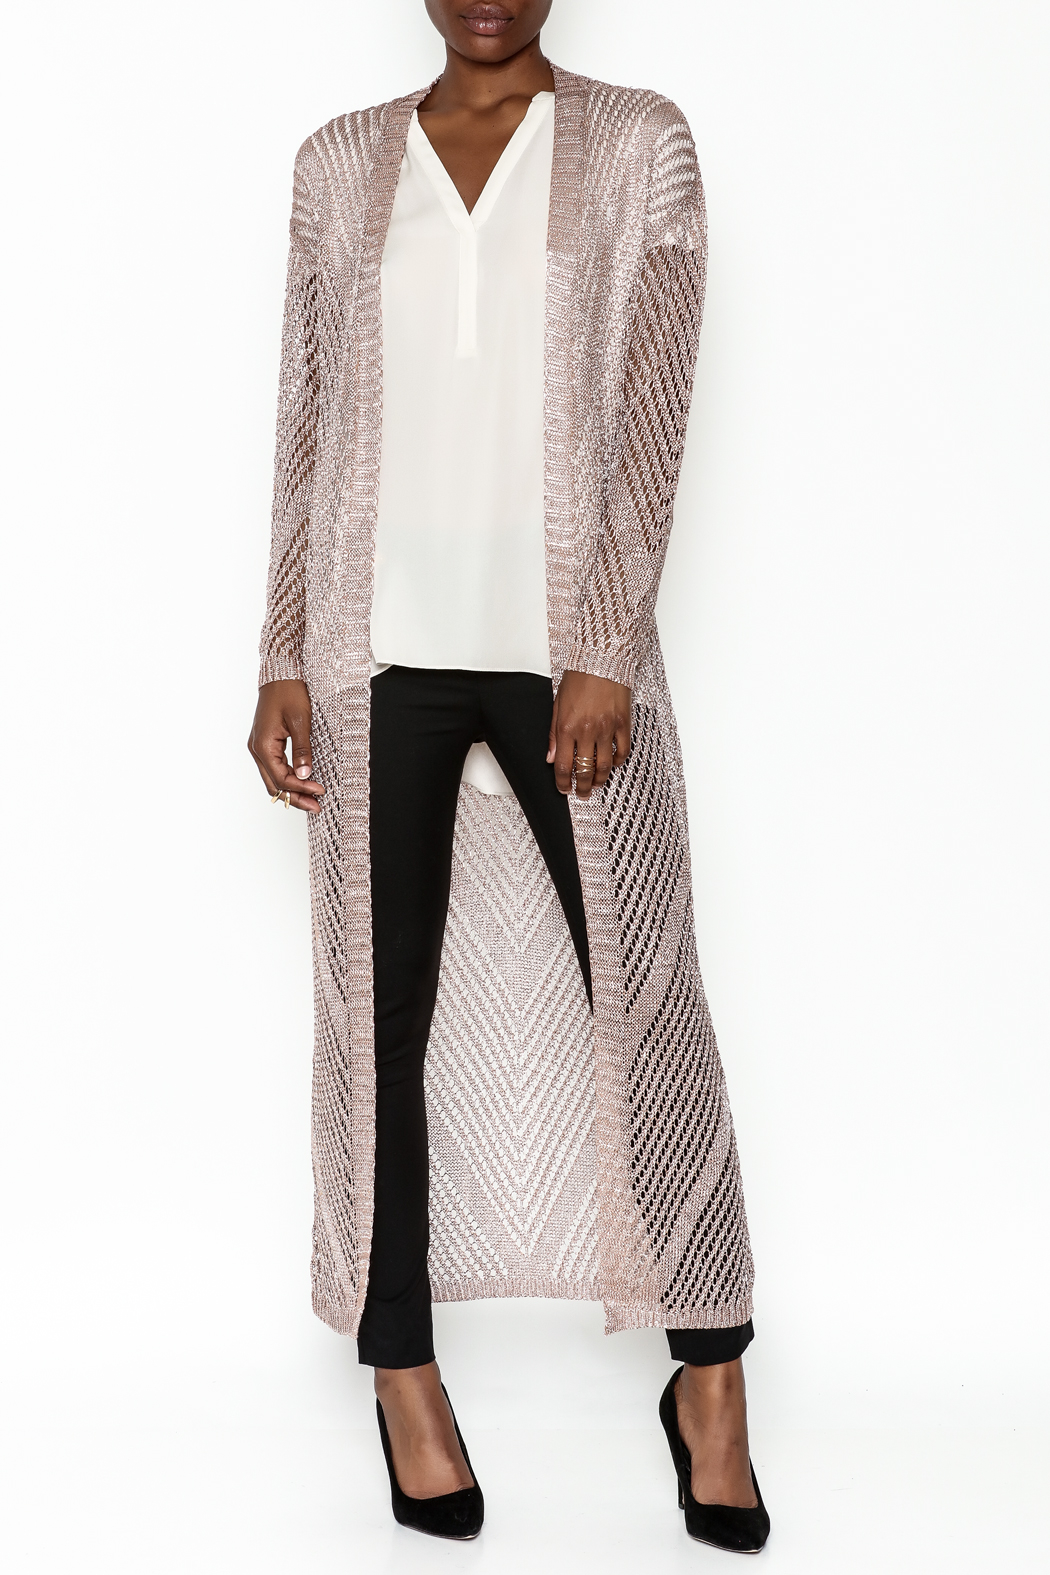 Wow Couture Metallic Threads Cardigan - Main Image